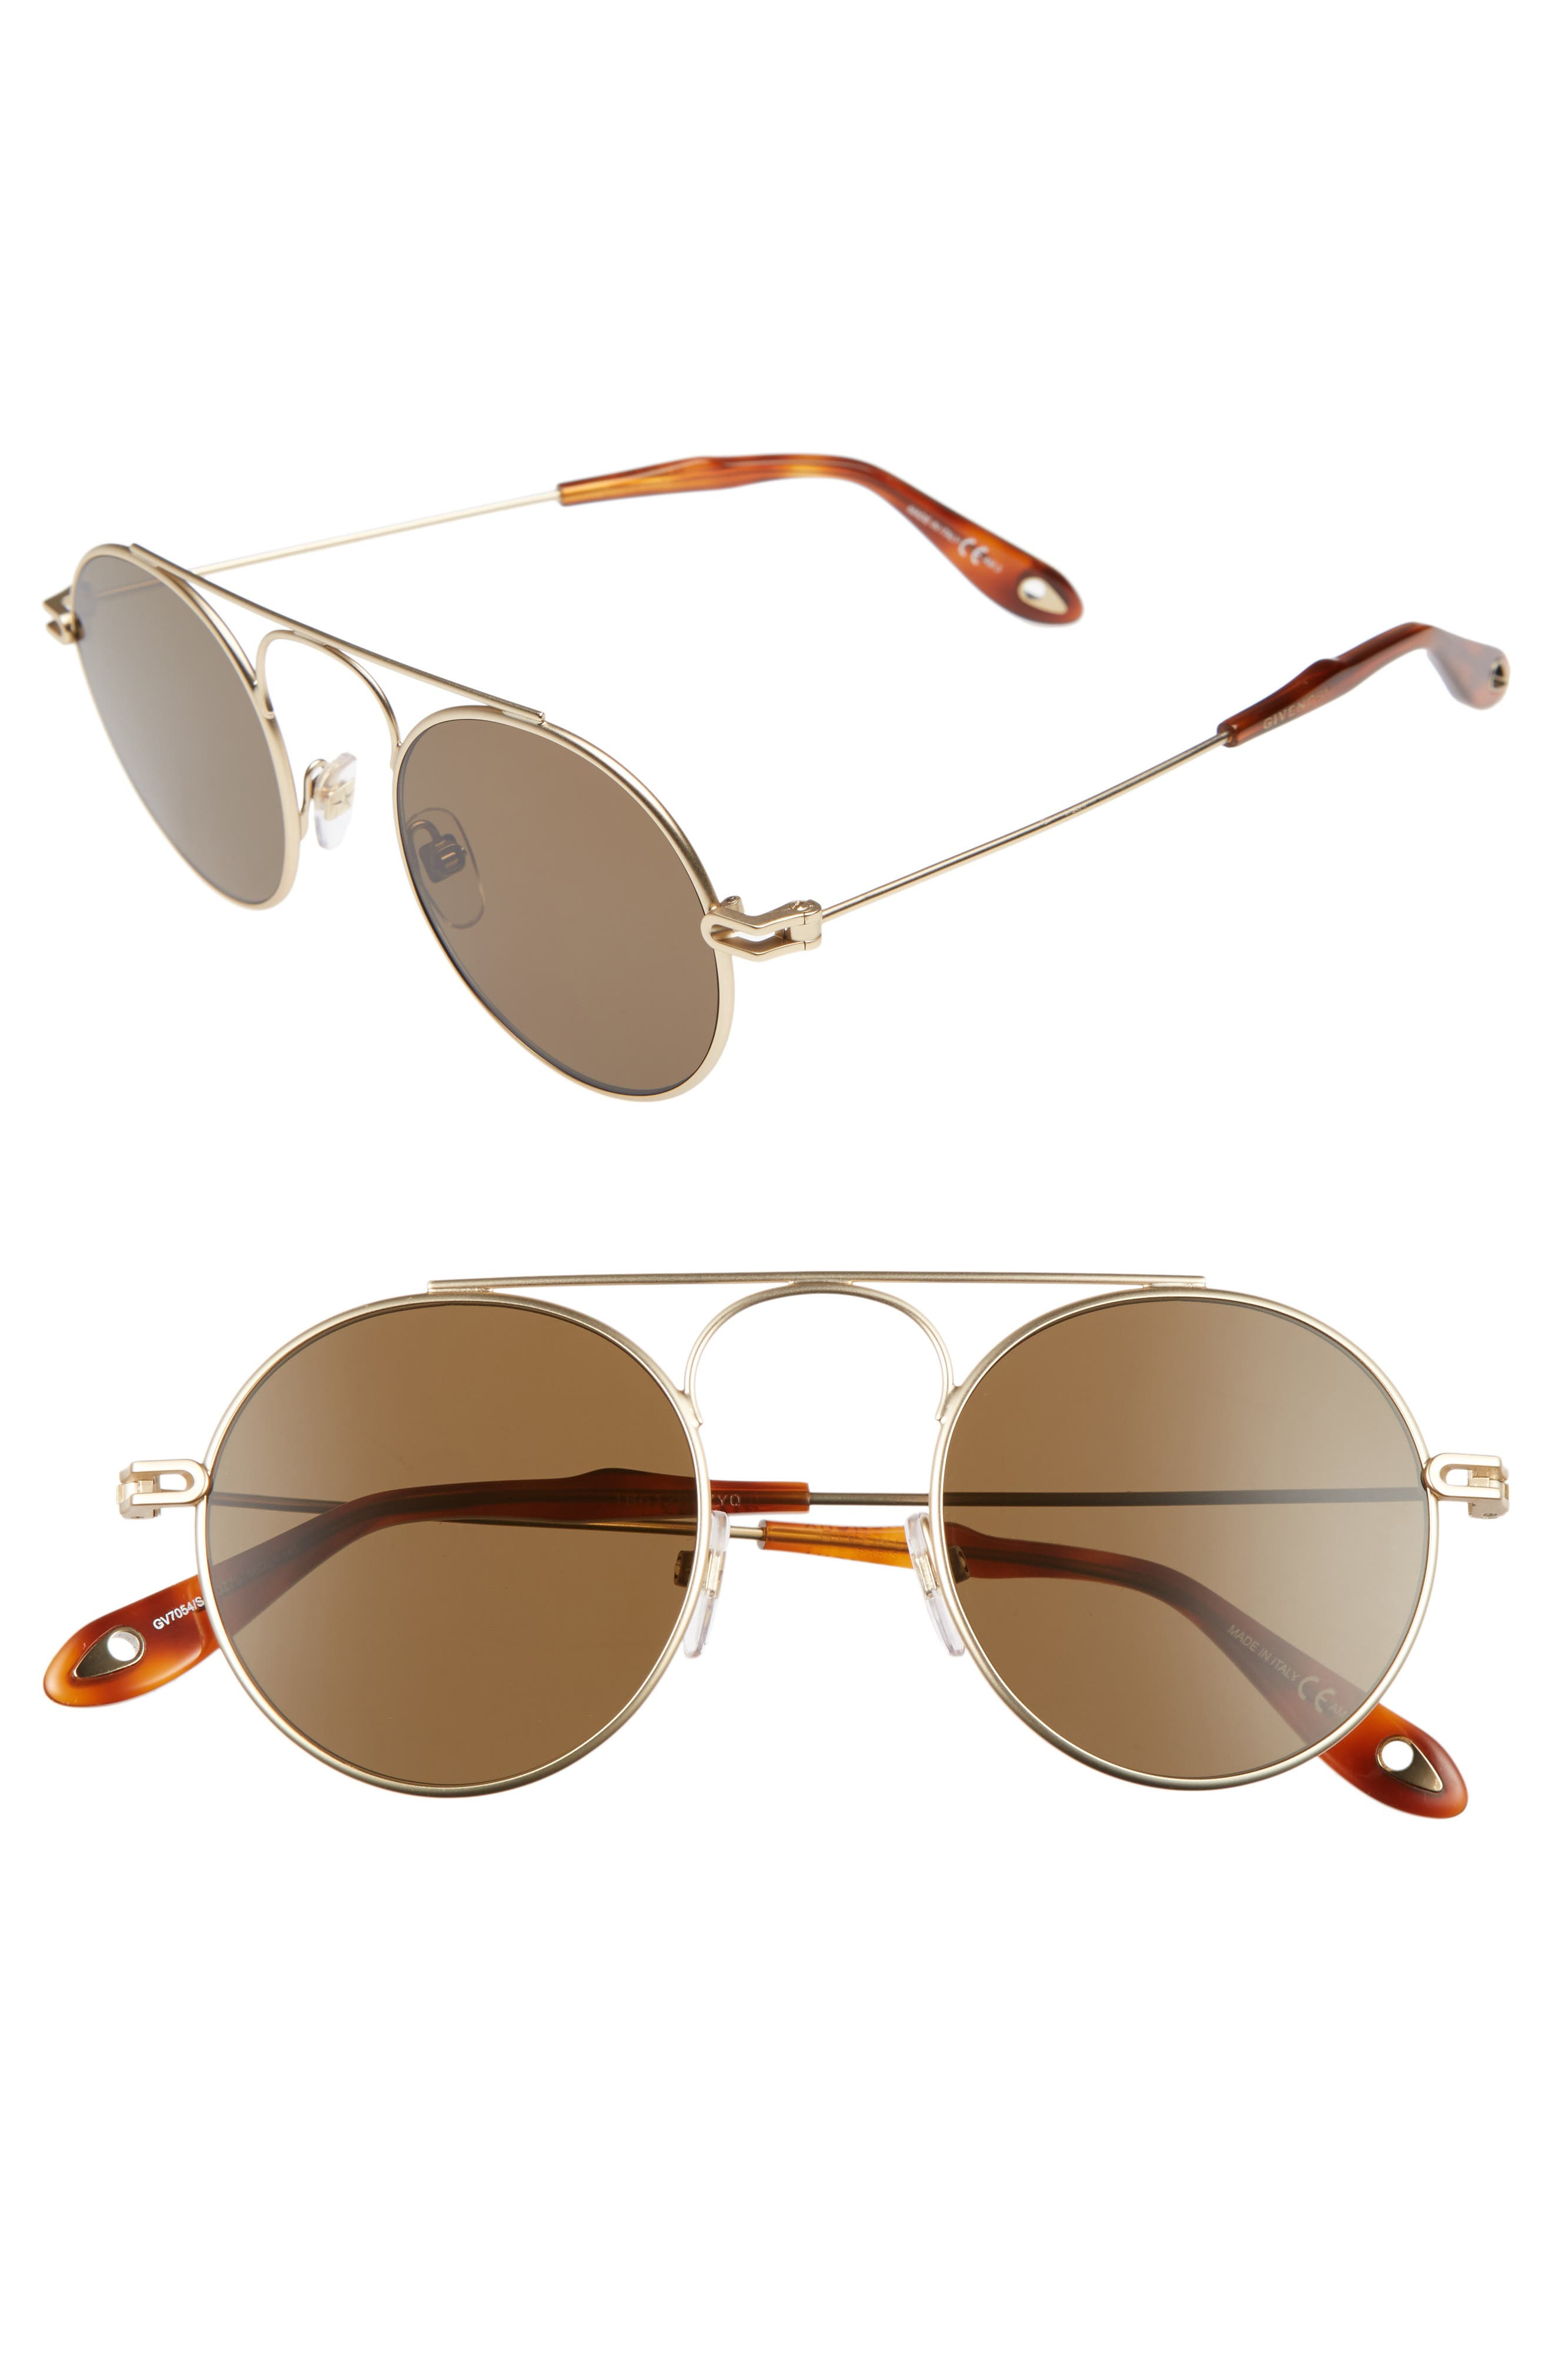 48mm Retro Sunglasses,                         Main,                         color, SMTT GOLD